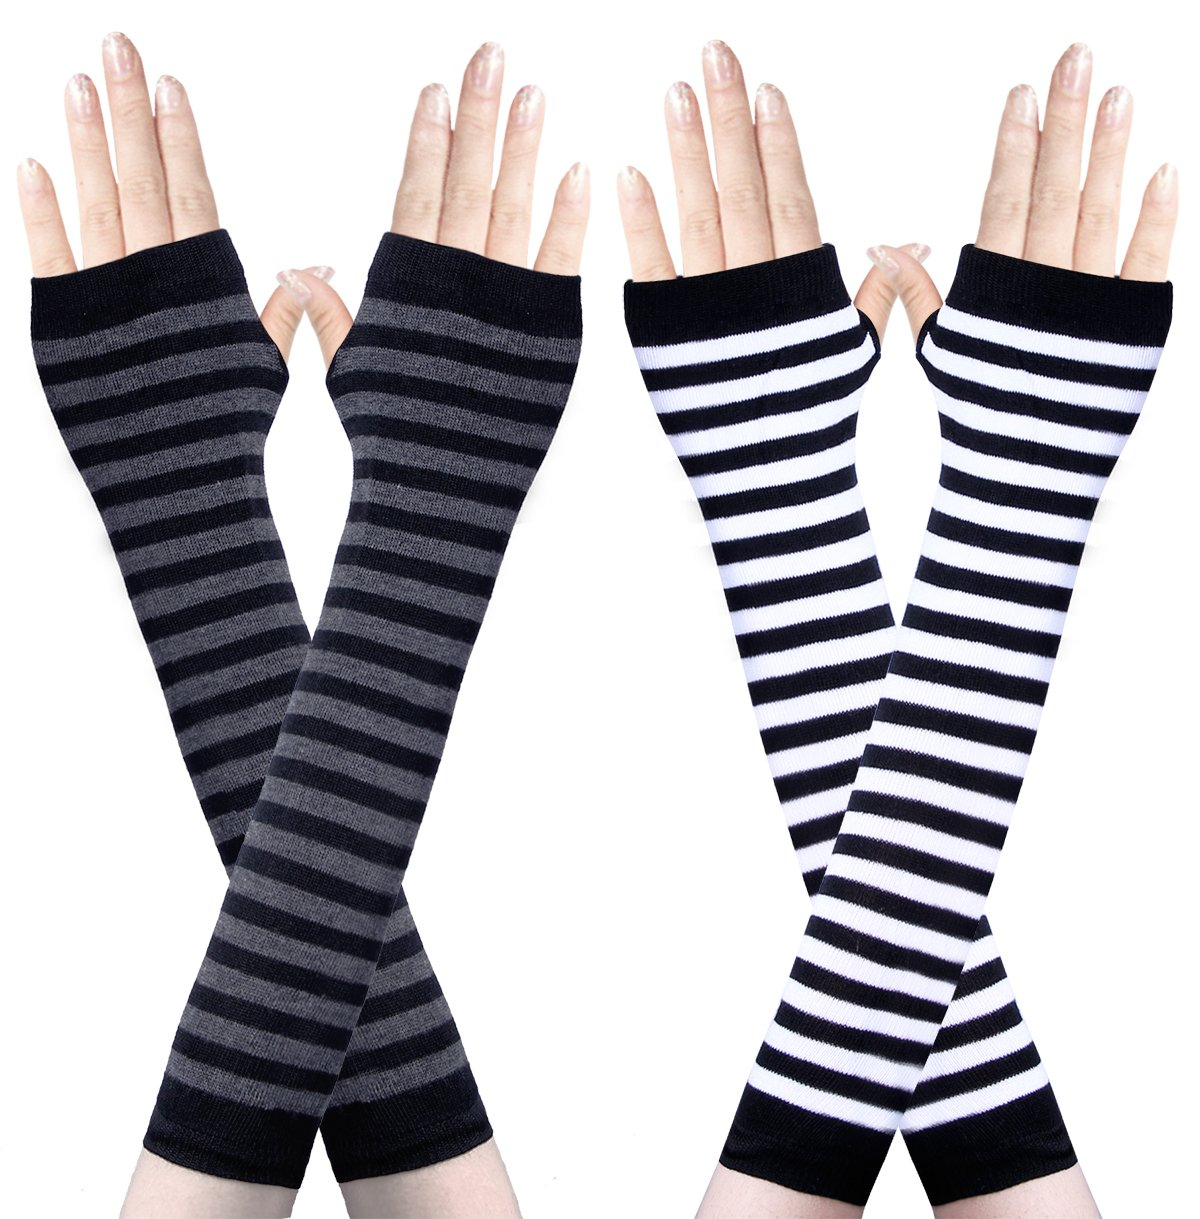 Amandir 2 Pairs Womens Long Fingerless Gloves Arm Warmers Knit Thumbhole Stretchy Gloves